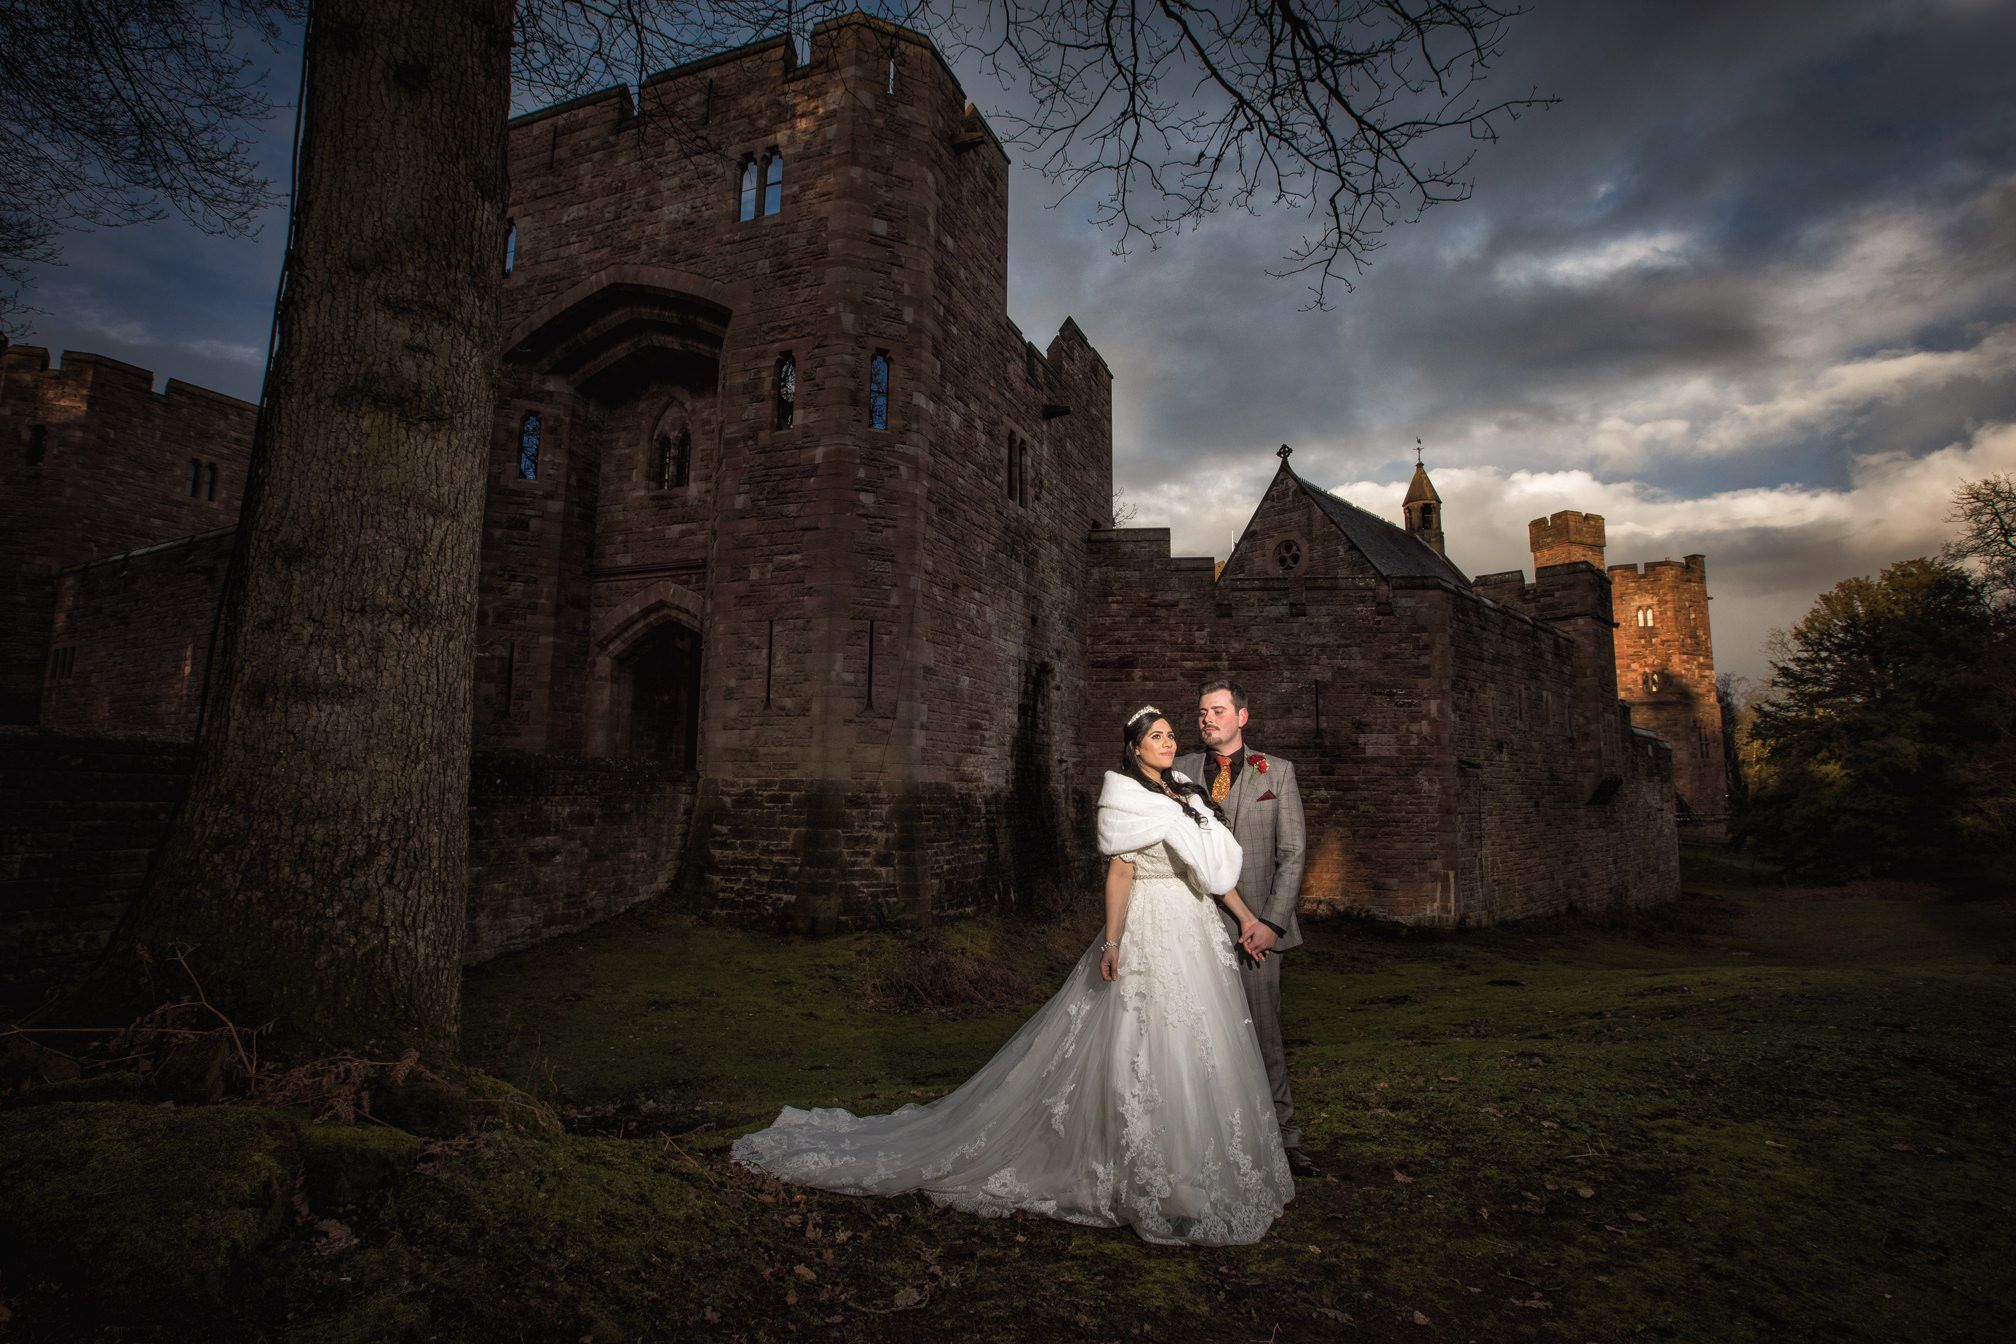 Groom admires his bride outside the walls of Peckforton Castle against a dramatic sky